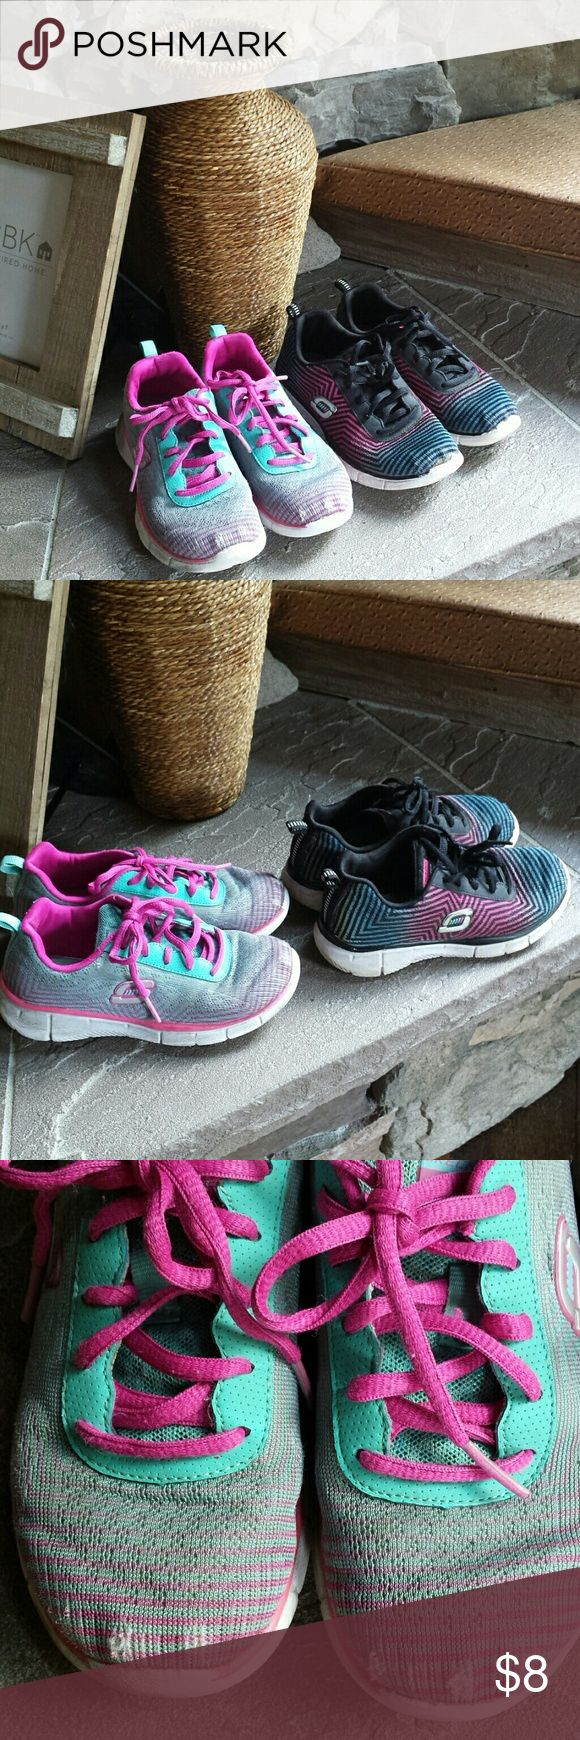 🔴2 Pair girls skechers size 12 Accepting low ball offers on red dot items. These shoes are definitely pre loved so selling as a pair. My daughter got good use out of these before she outgrew them but they would make good play shoes for another little girl. Paid $50 each. OK condition overall just some cosmetic flaws. Willing to put into a bundle as a free item upon request. Skechers Shoes Sneakers